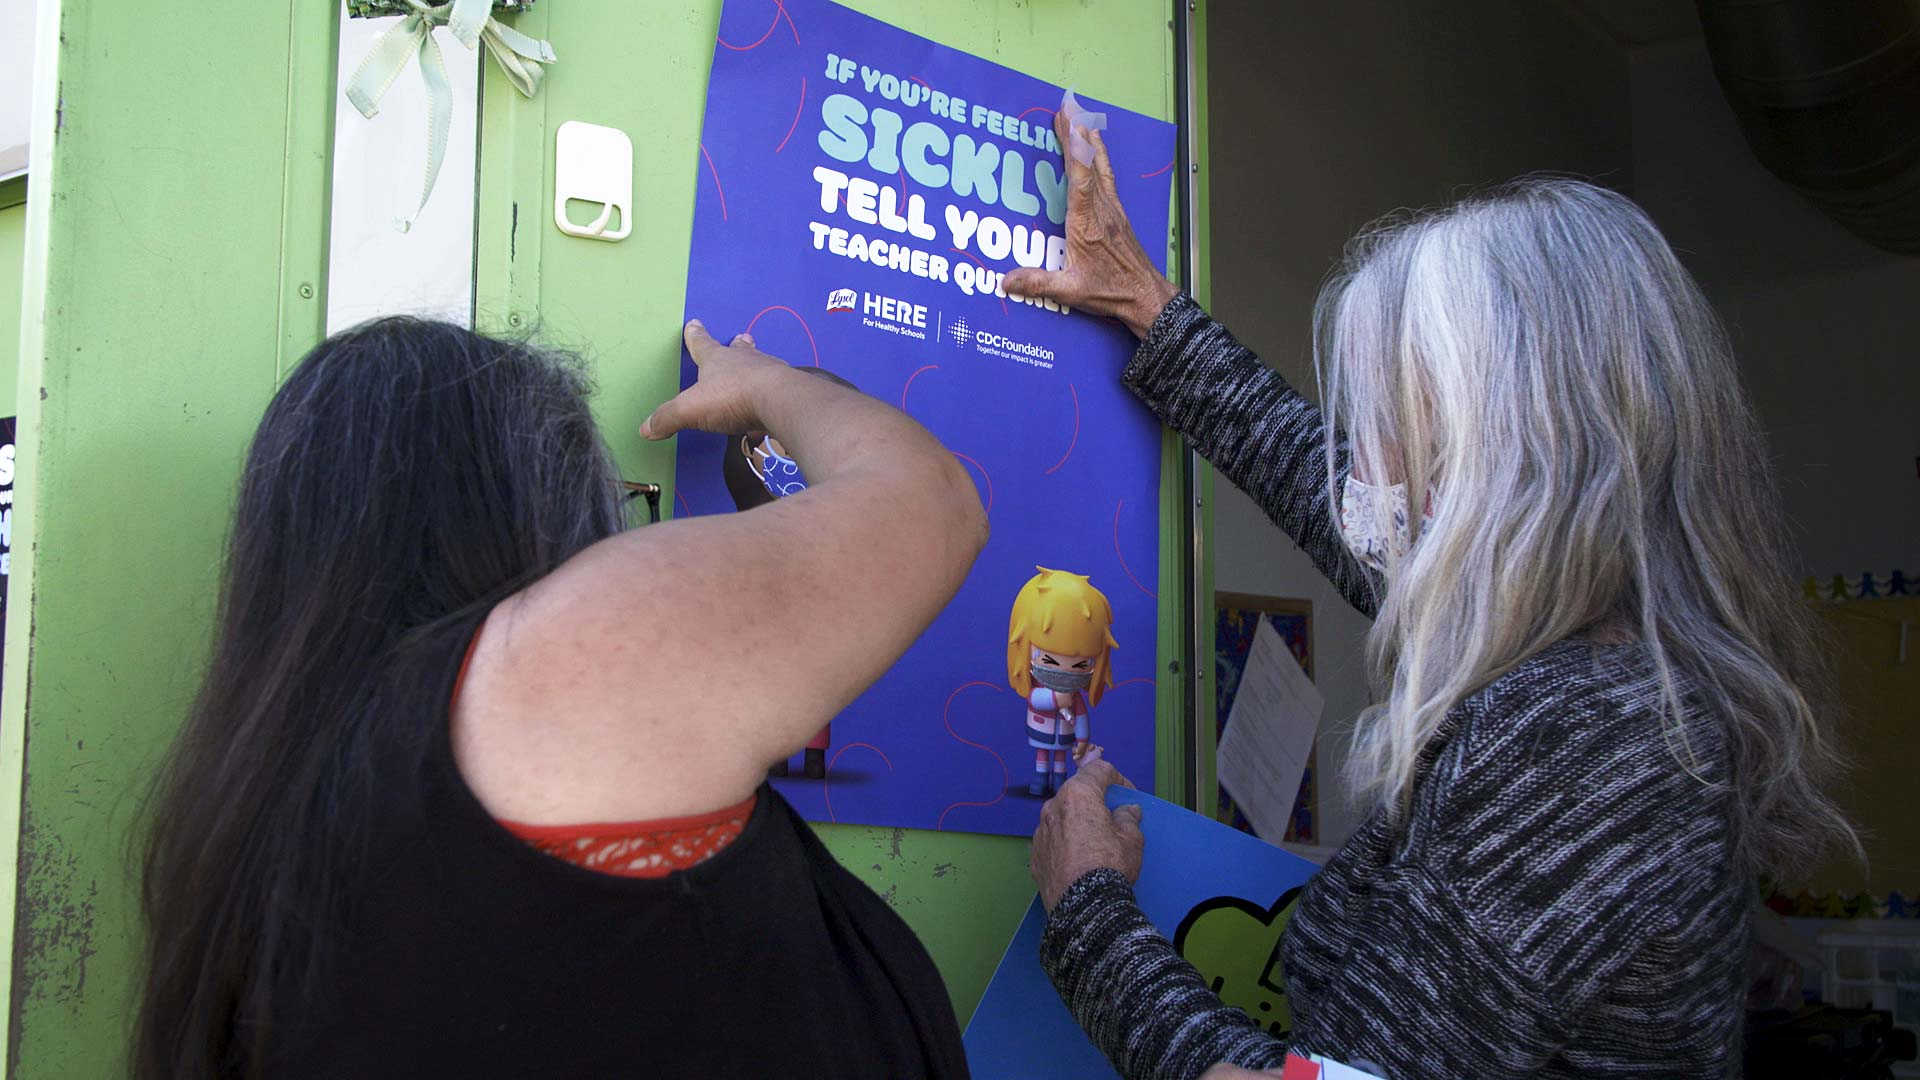 Staff at Davidson Elementary in the Tucson Unified School District hang a poster letting students know to report if they feel sick. March 10, 2021.